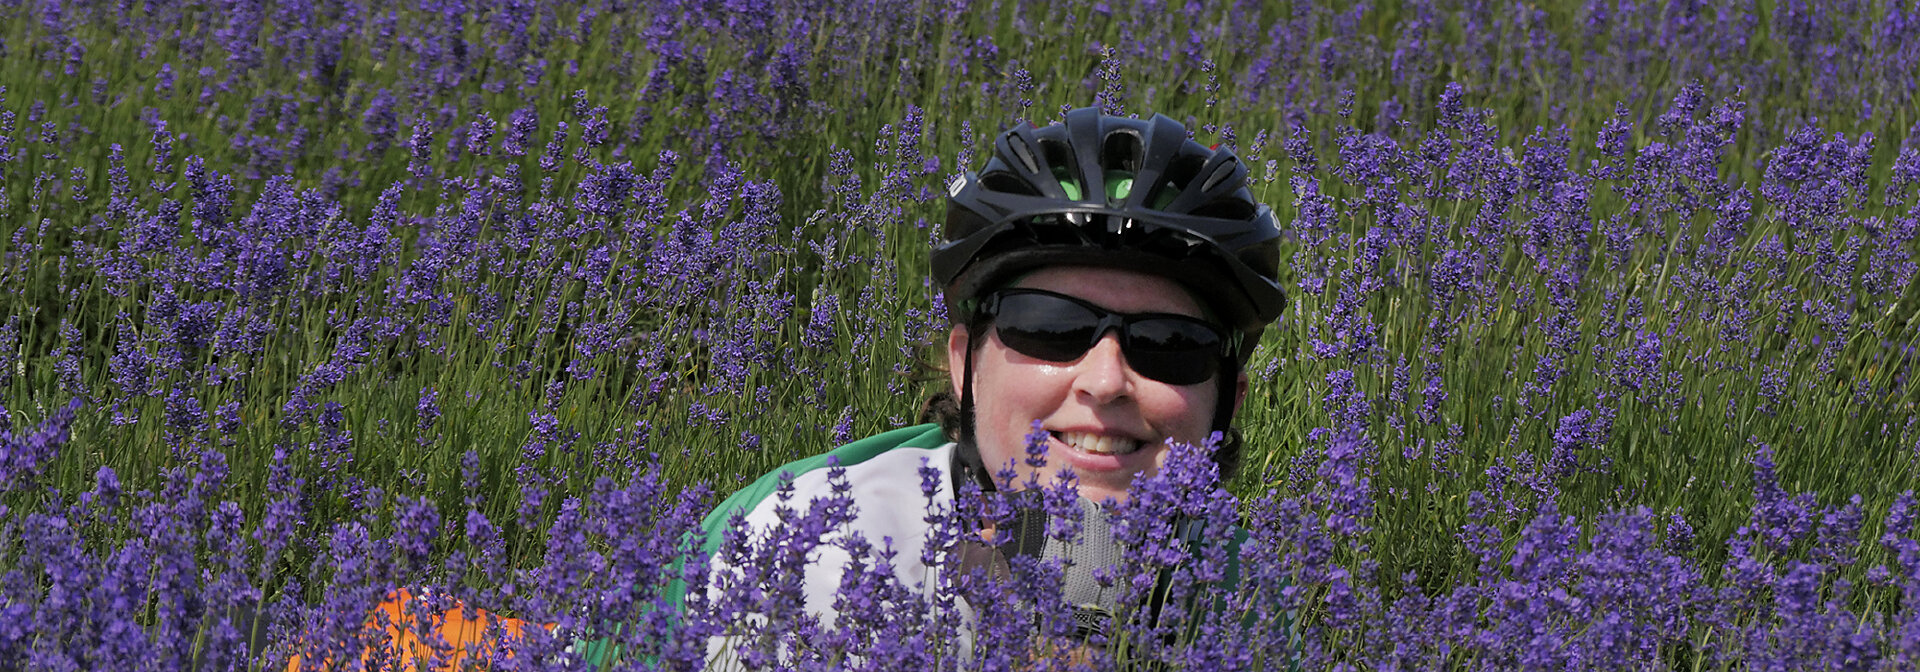 Shannon Roddy in the lavender on Washington Island Door County